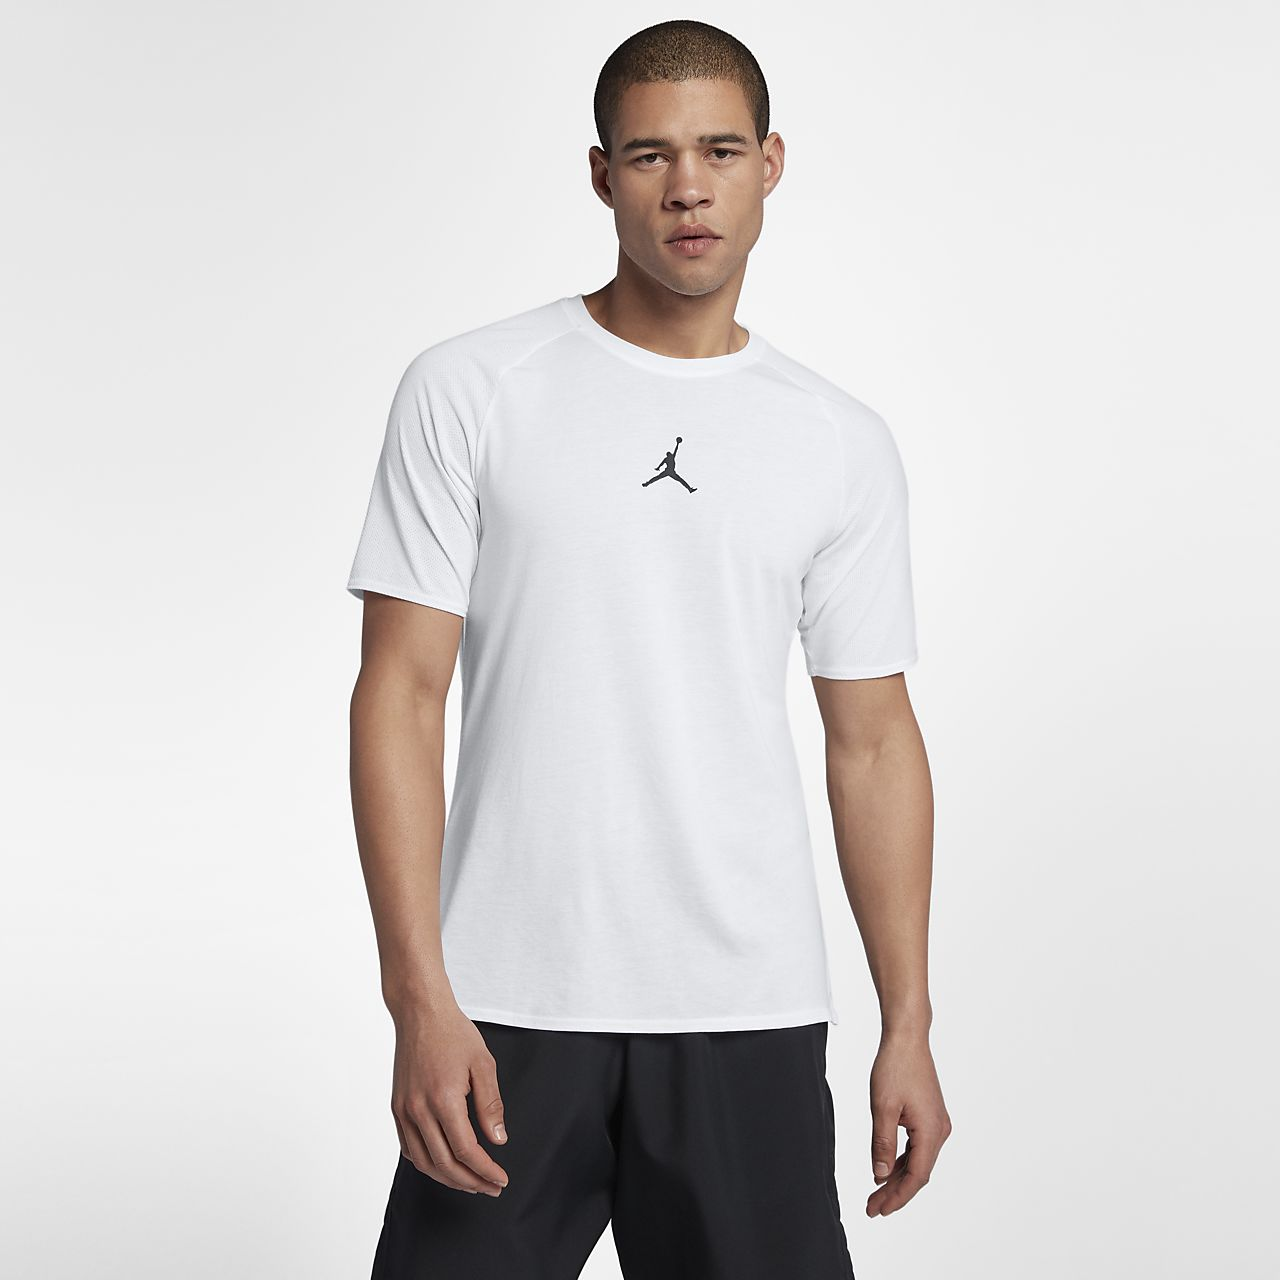 a2d3168051fb48 Jordan 23 Alpha Men s Short-Sleeve Training Top. Nike.com NO